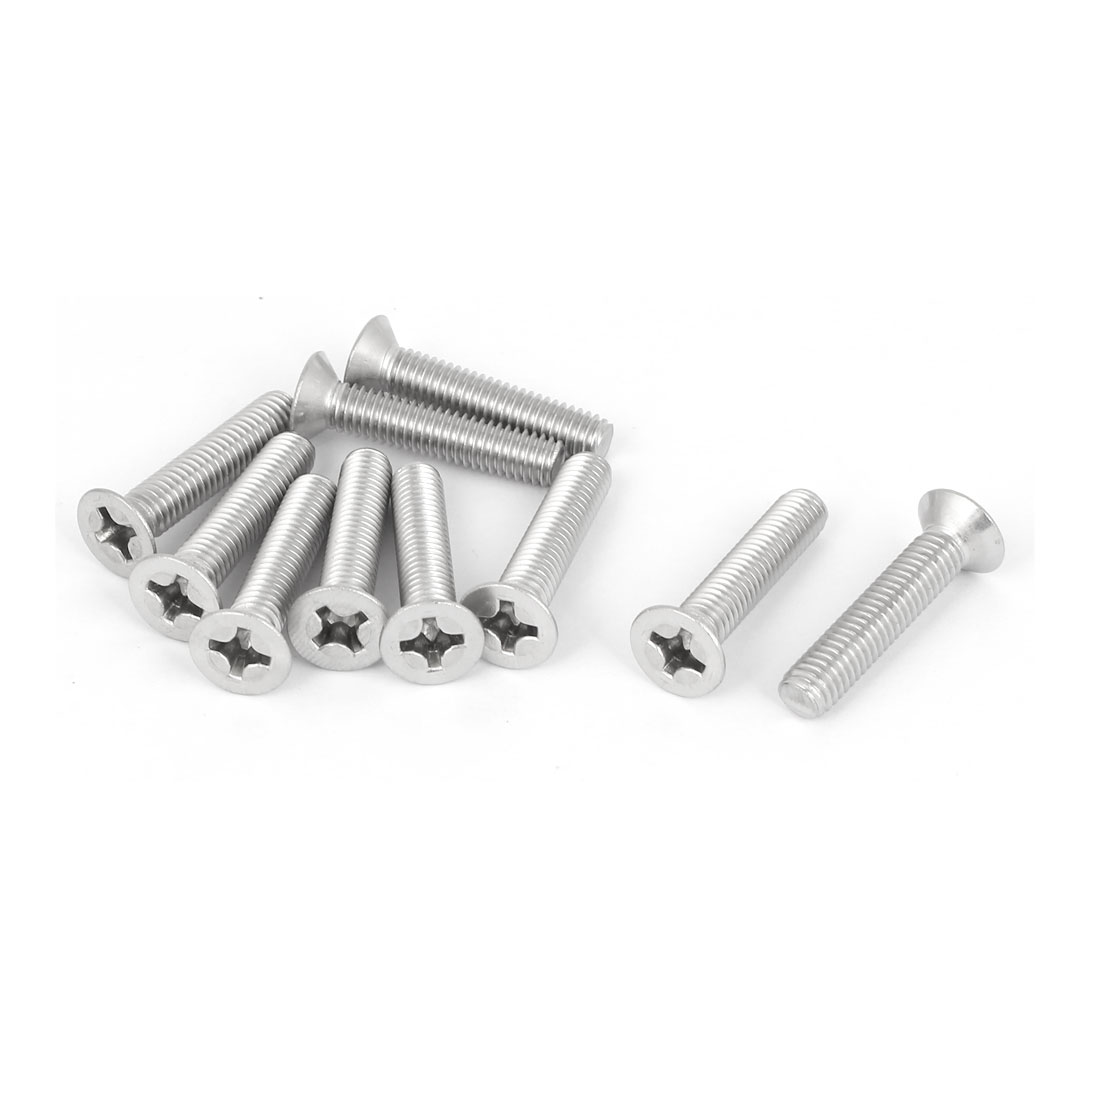 10 Pcs M6x30mm 316 Stainless Steel Countersunk Phillips Machine Screws Fasteners